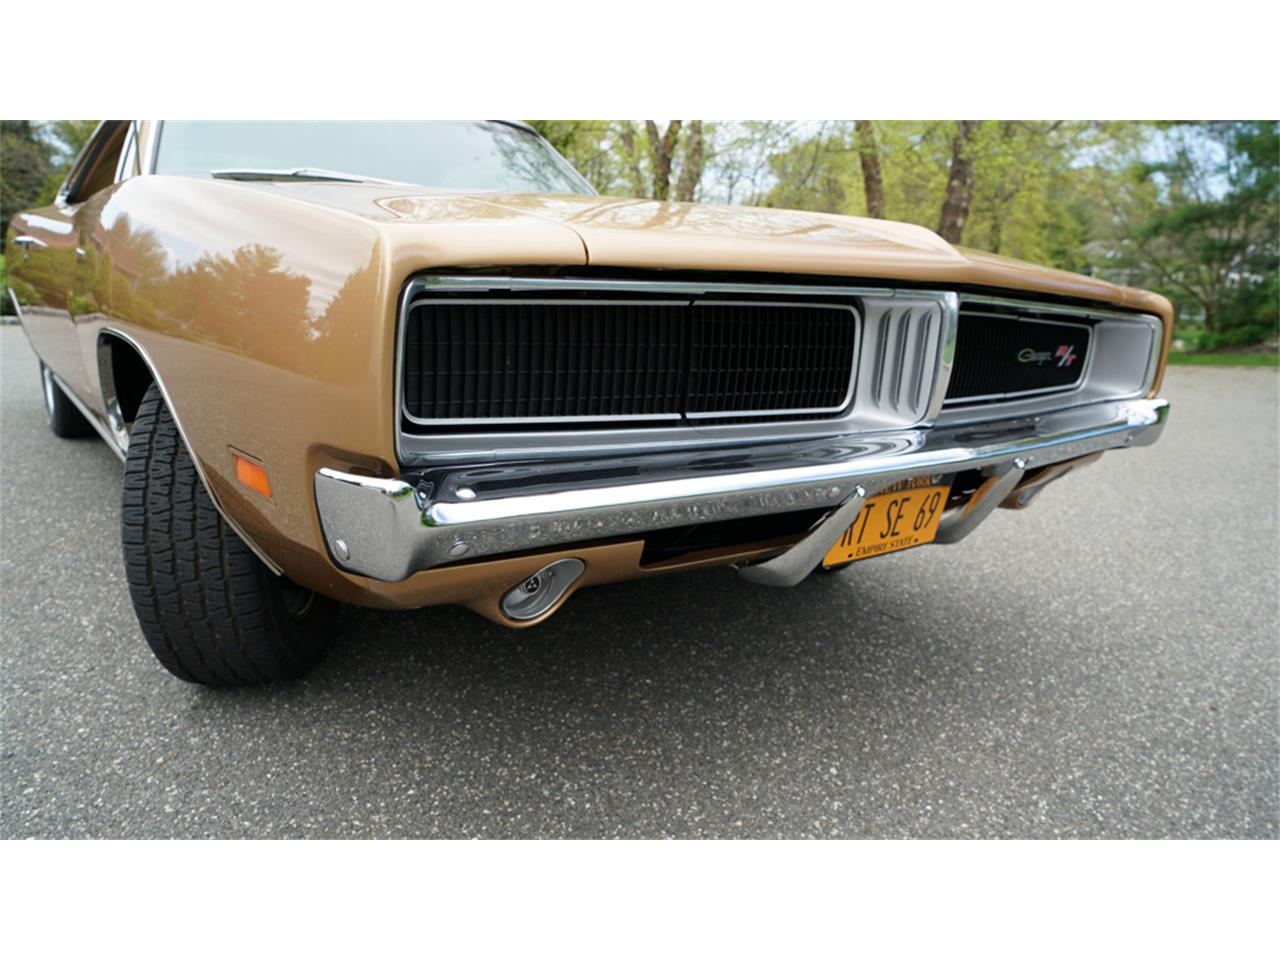 Large Picture of Classic '69 Dodge Charger R/T located in New York - $83,900.00 Offered by Fiore Motor Classics - Q1UM